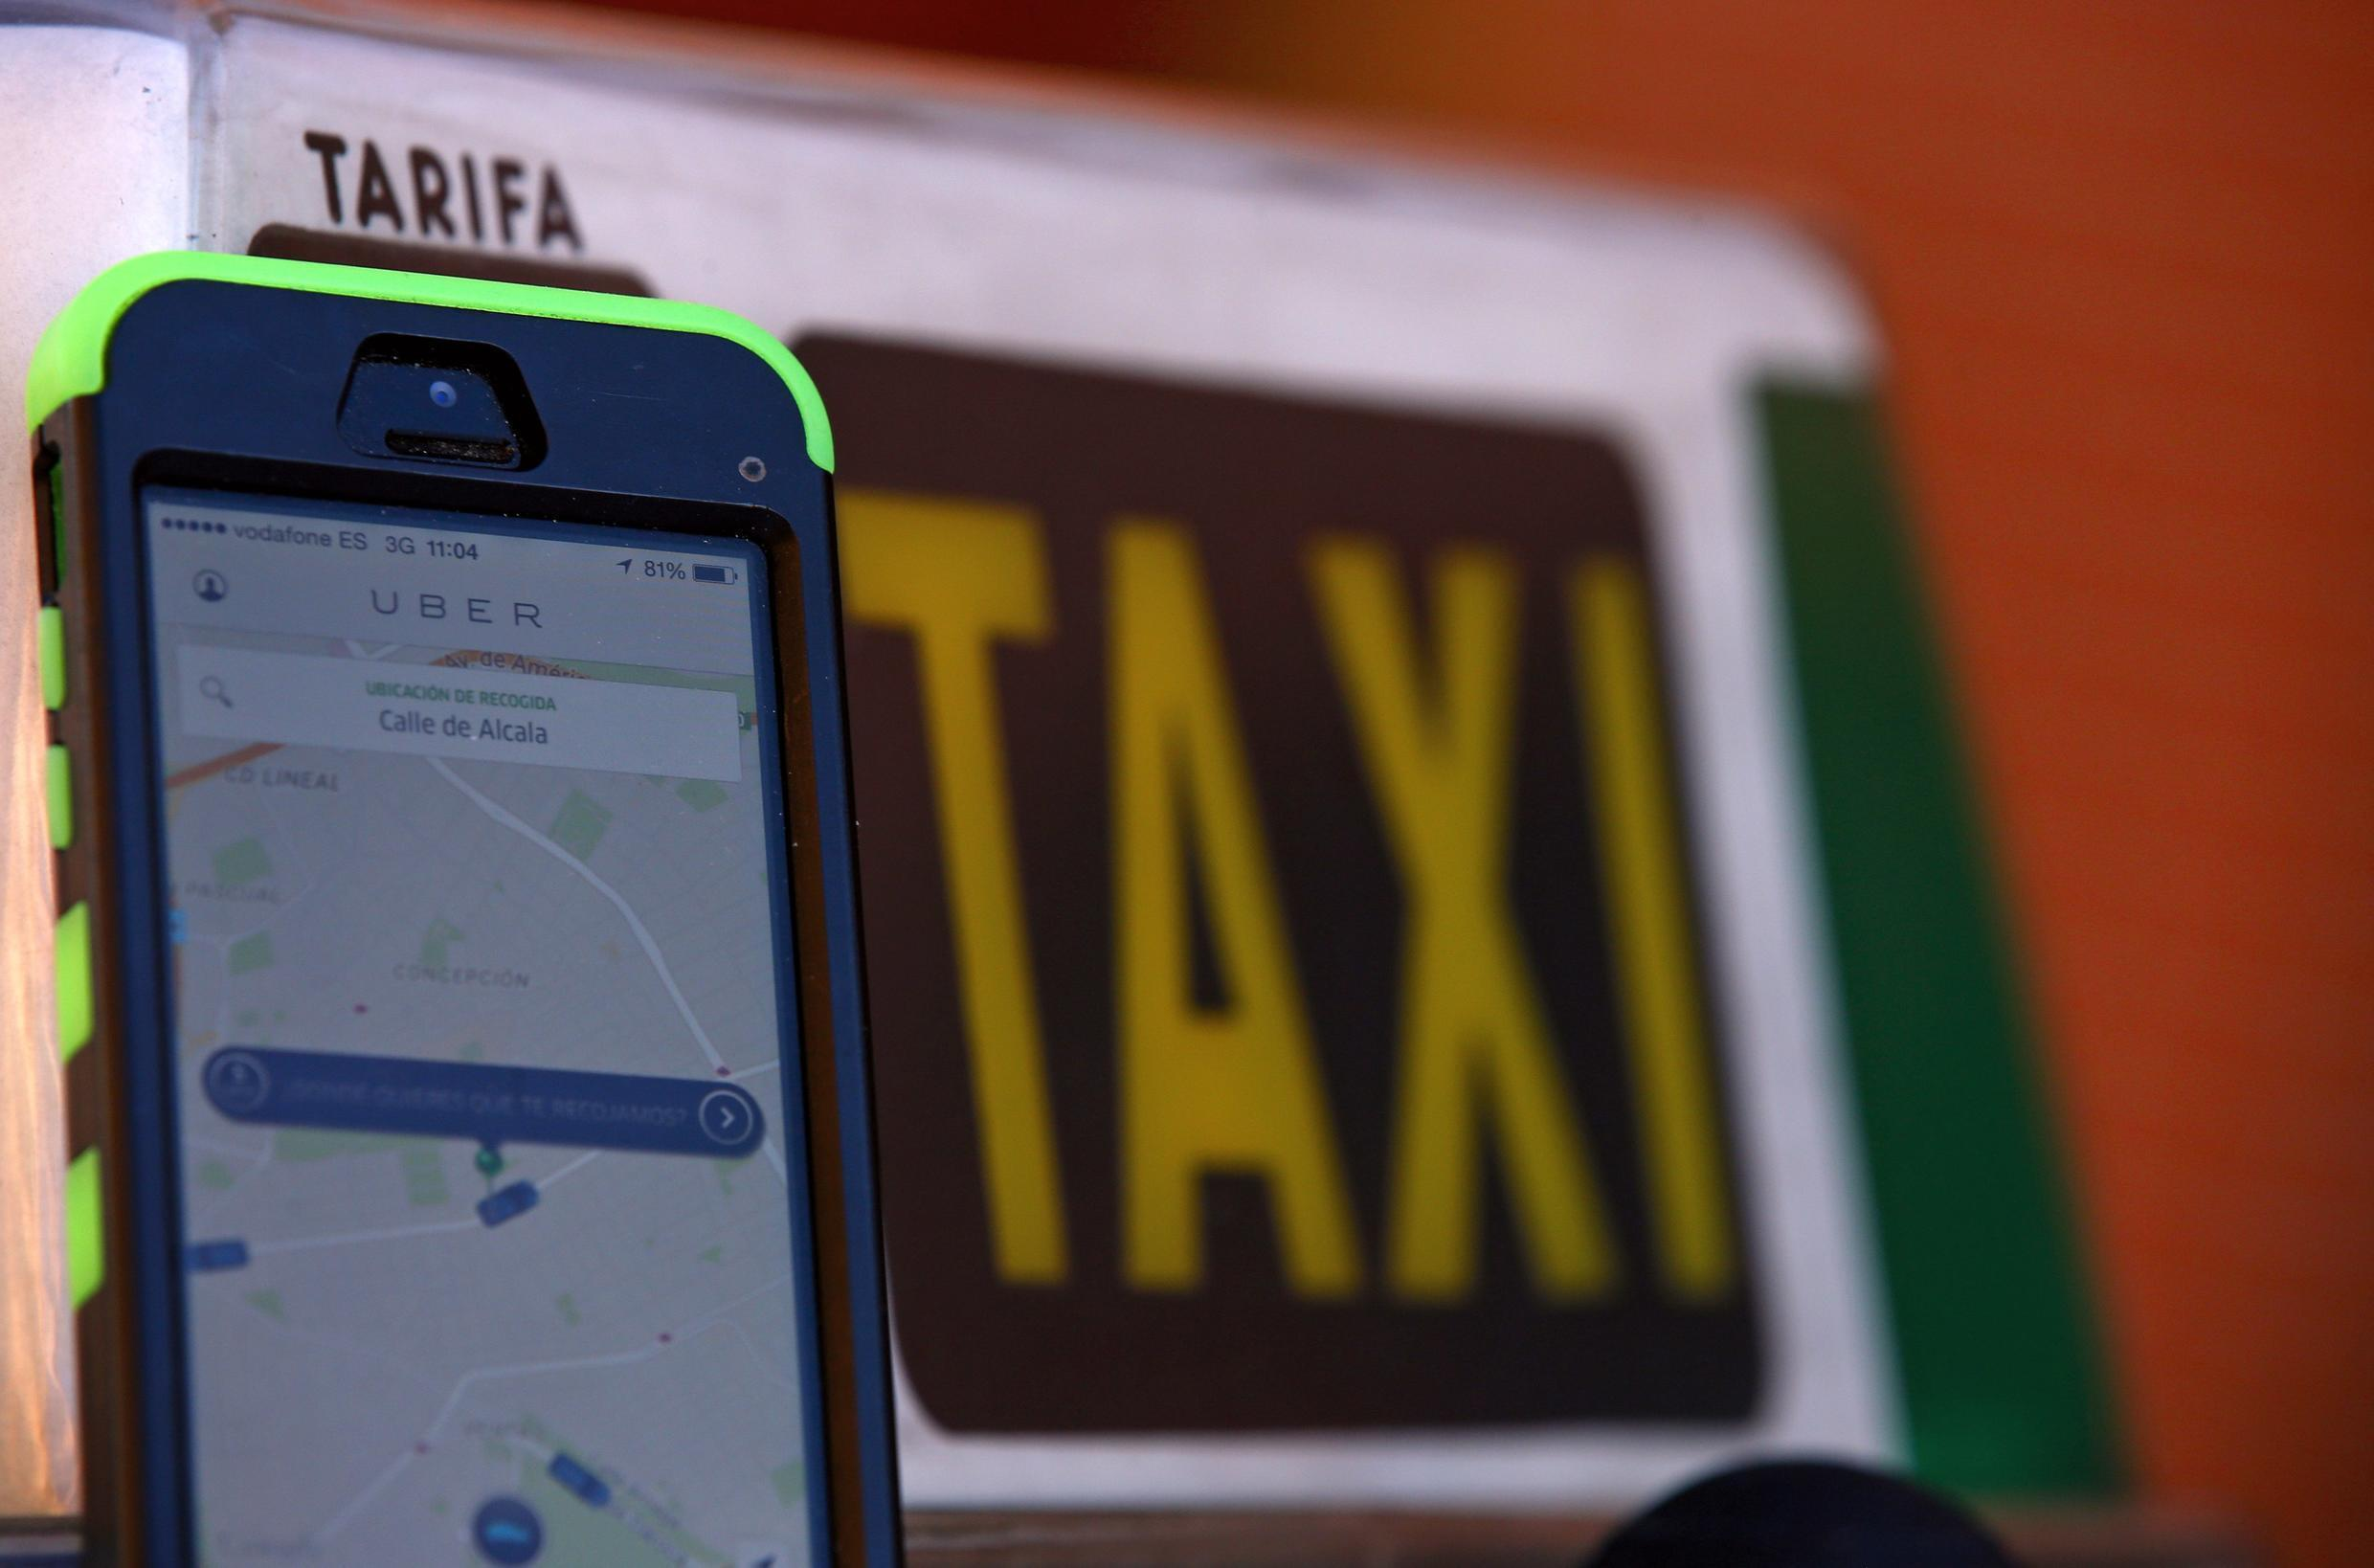 It was taxis v Uber in France Thursday